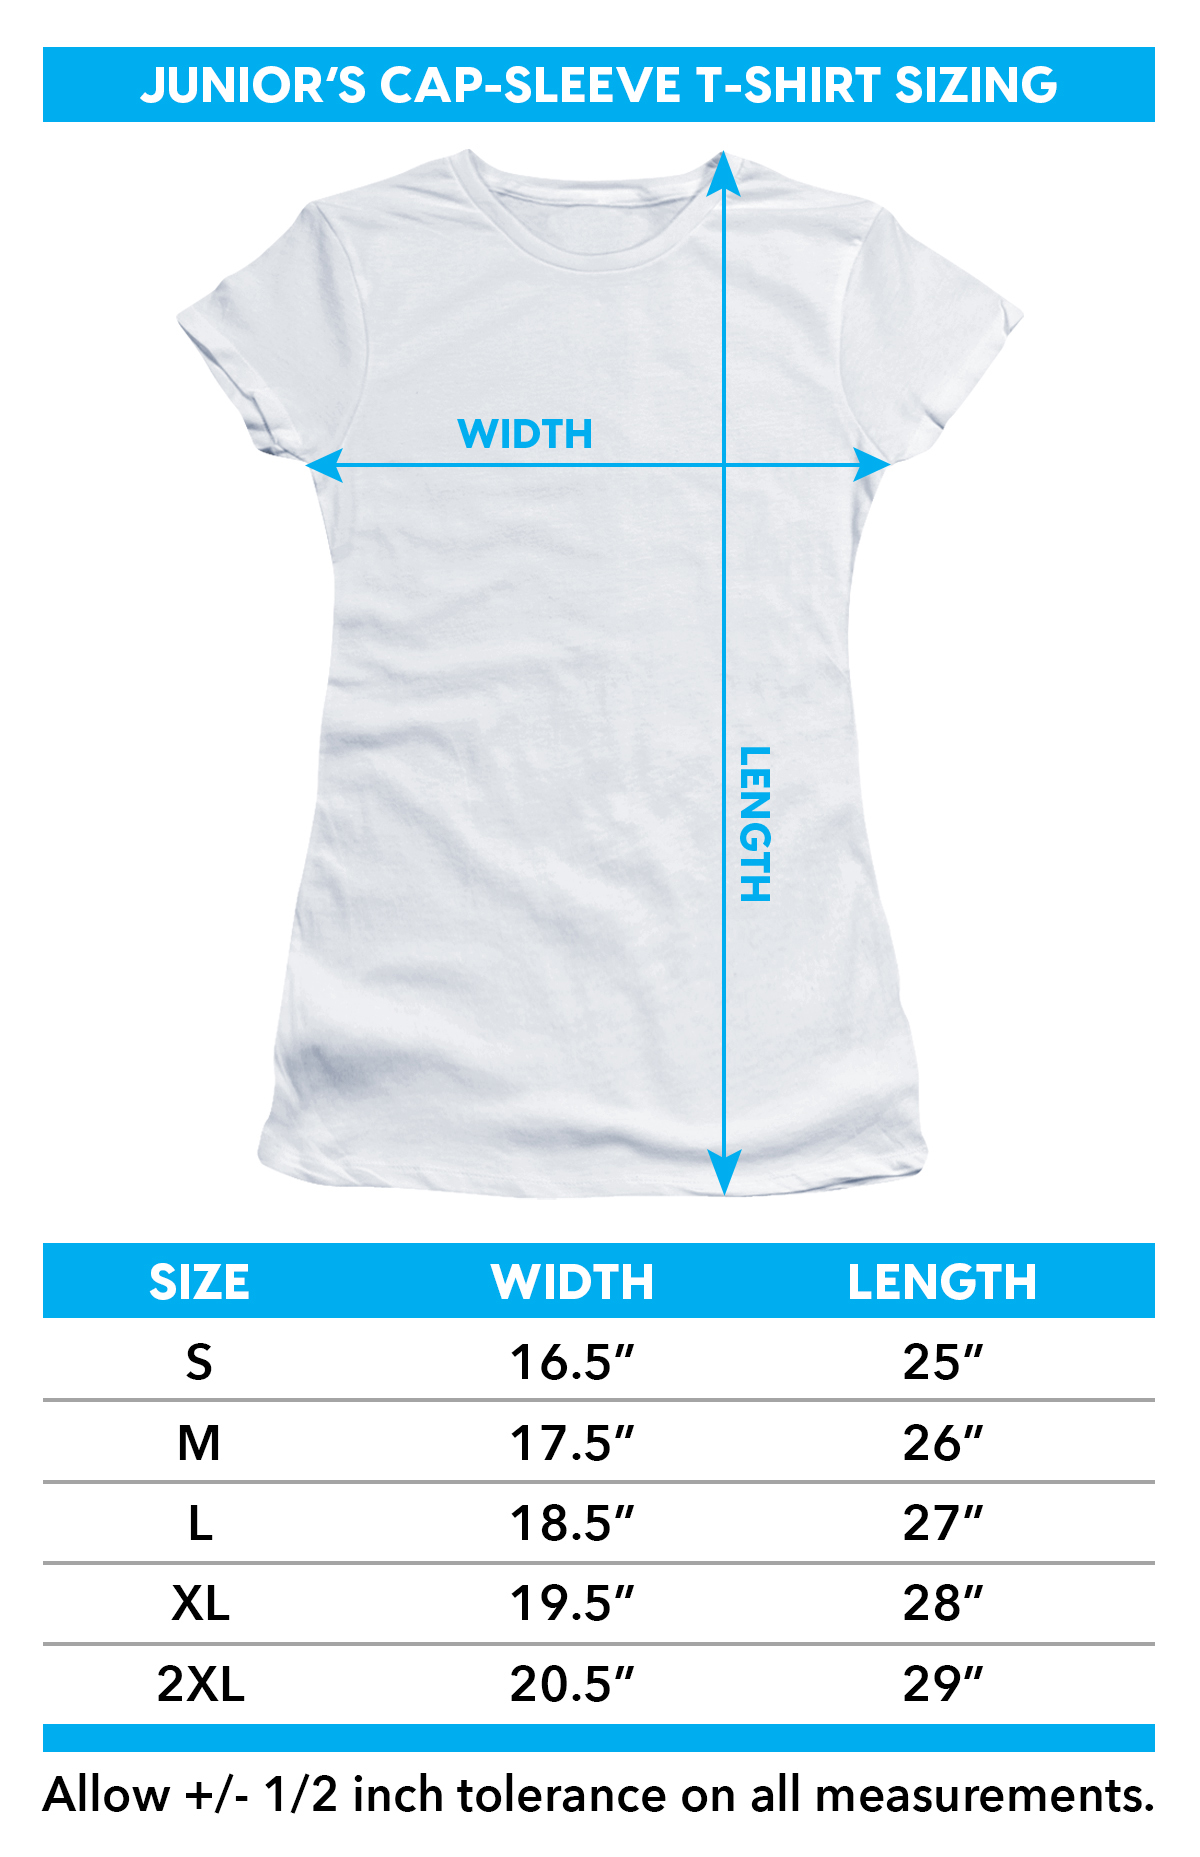 Girls sizing chart for Child's Play Girls T-Shirt - Good Guy TRV-UNI420-JS